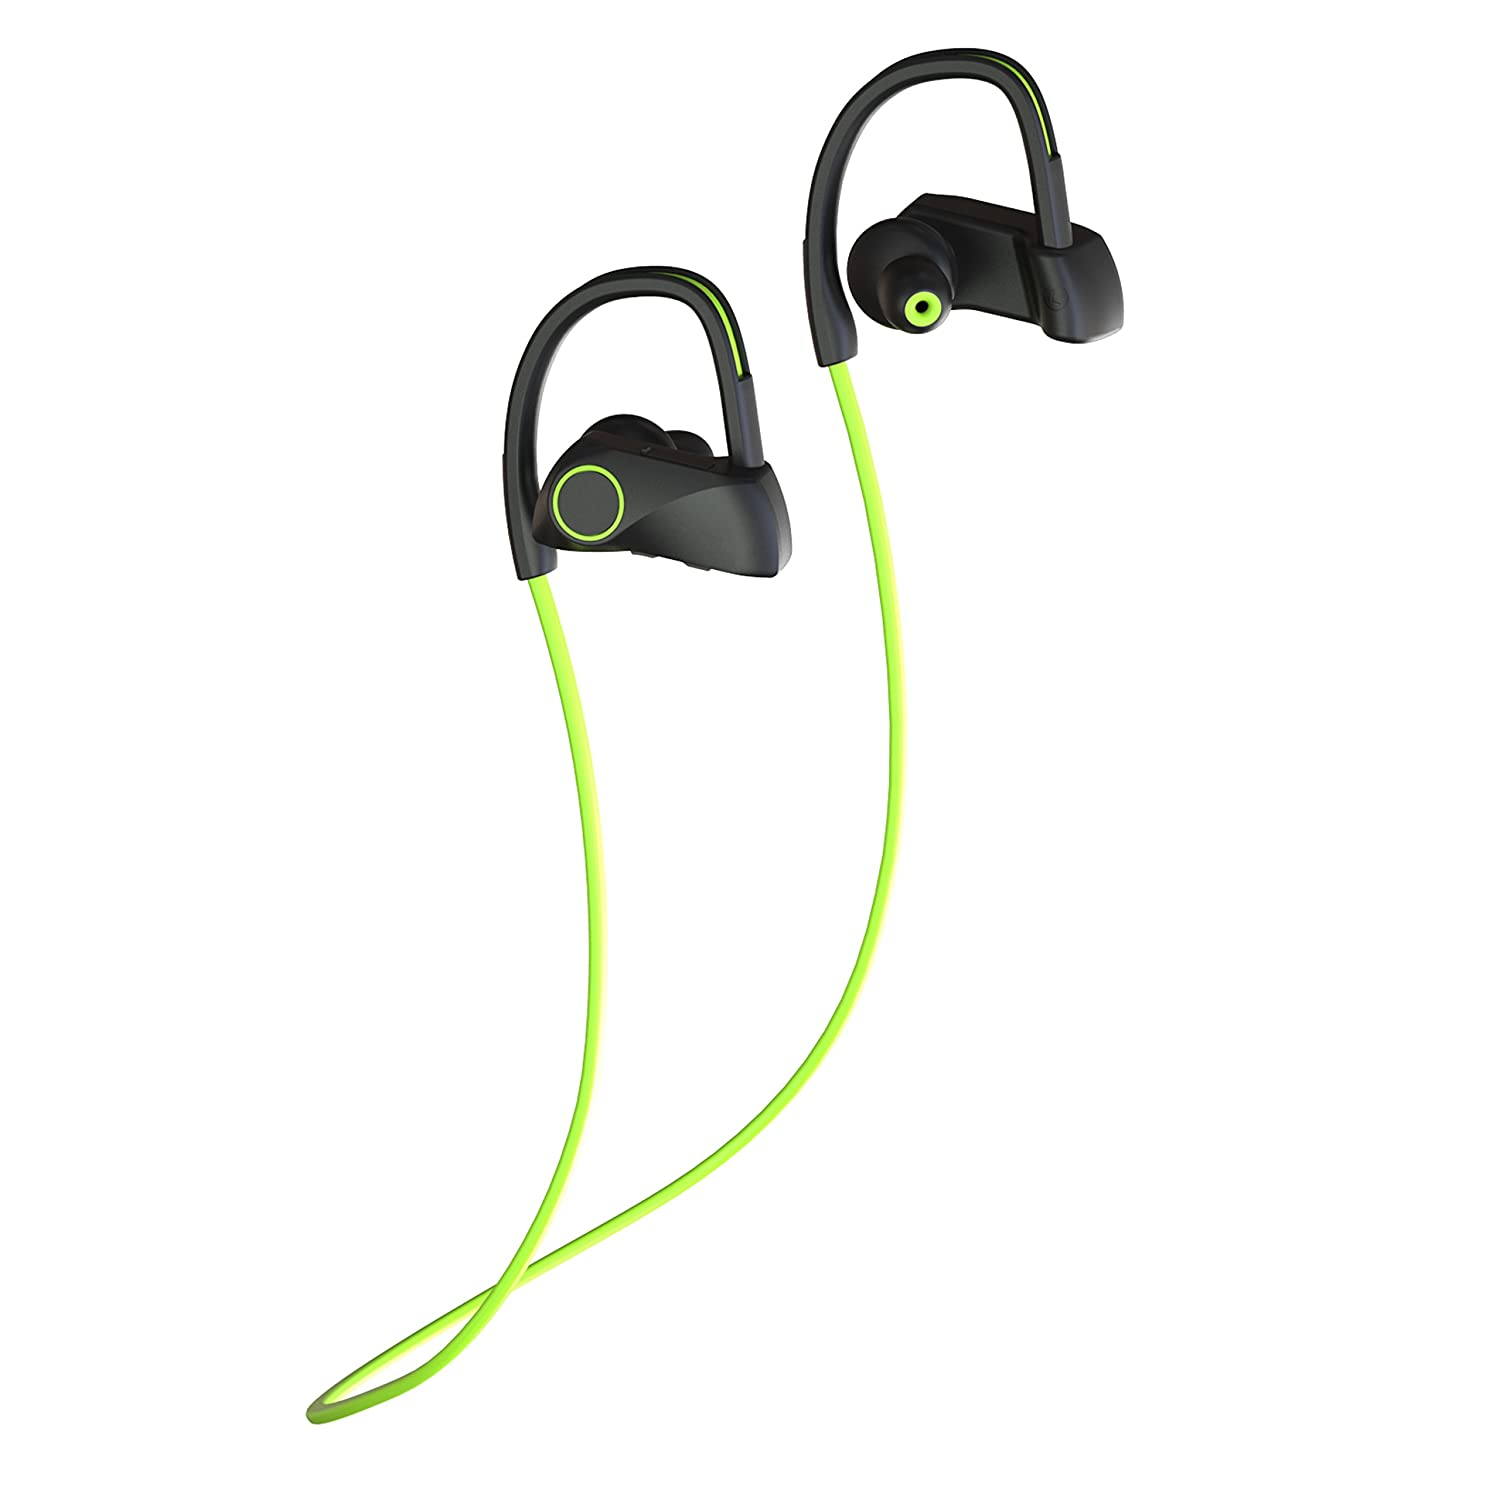 WeCool D200 Bluetooth 4.1 Sports Headphones with Mic for